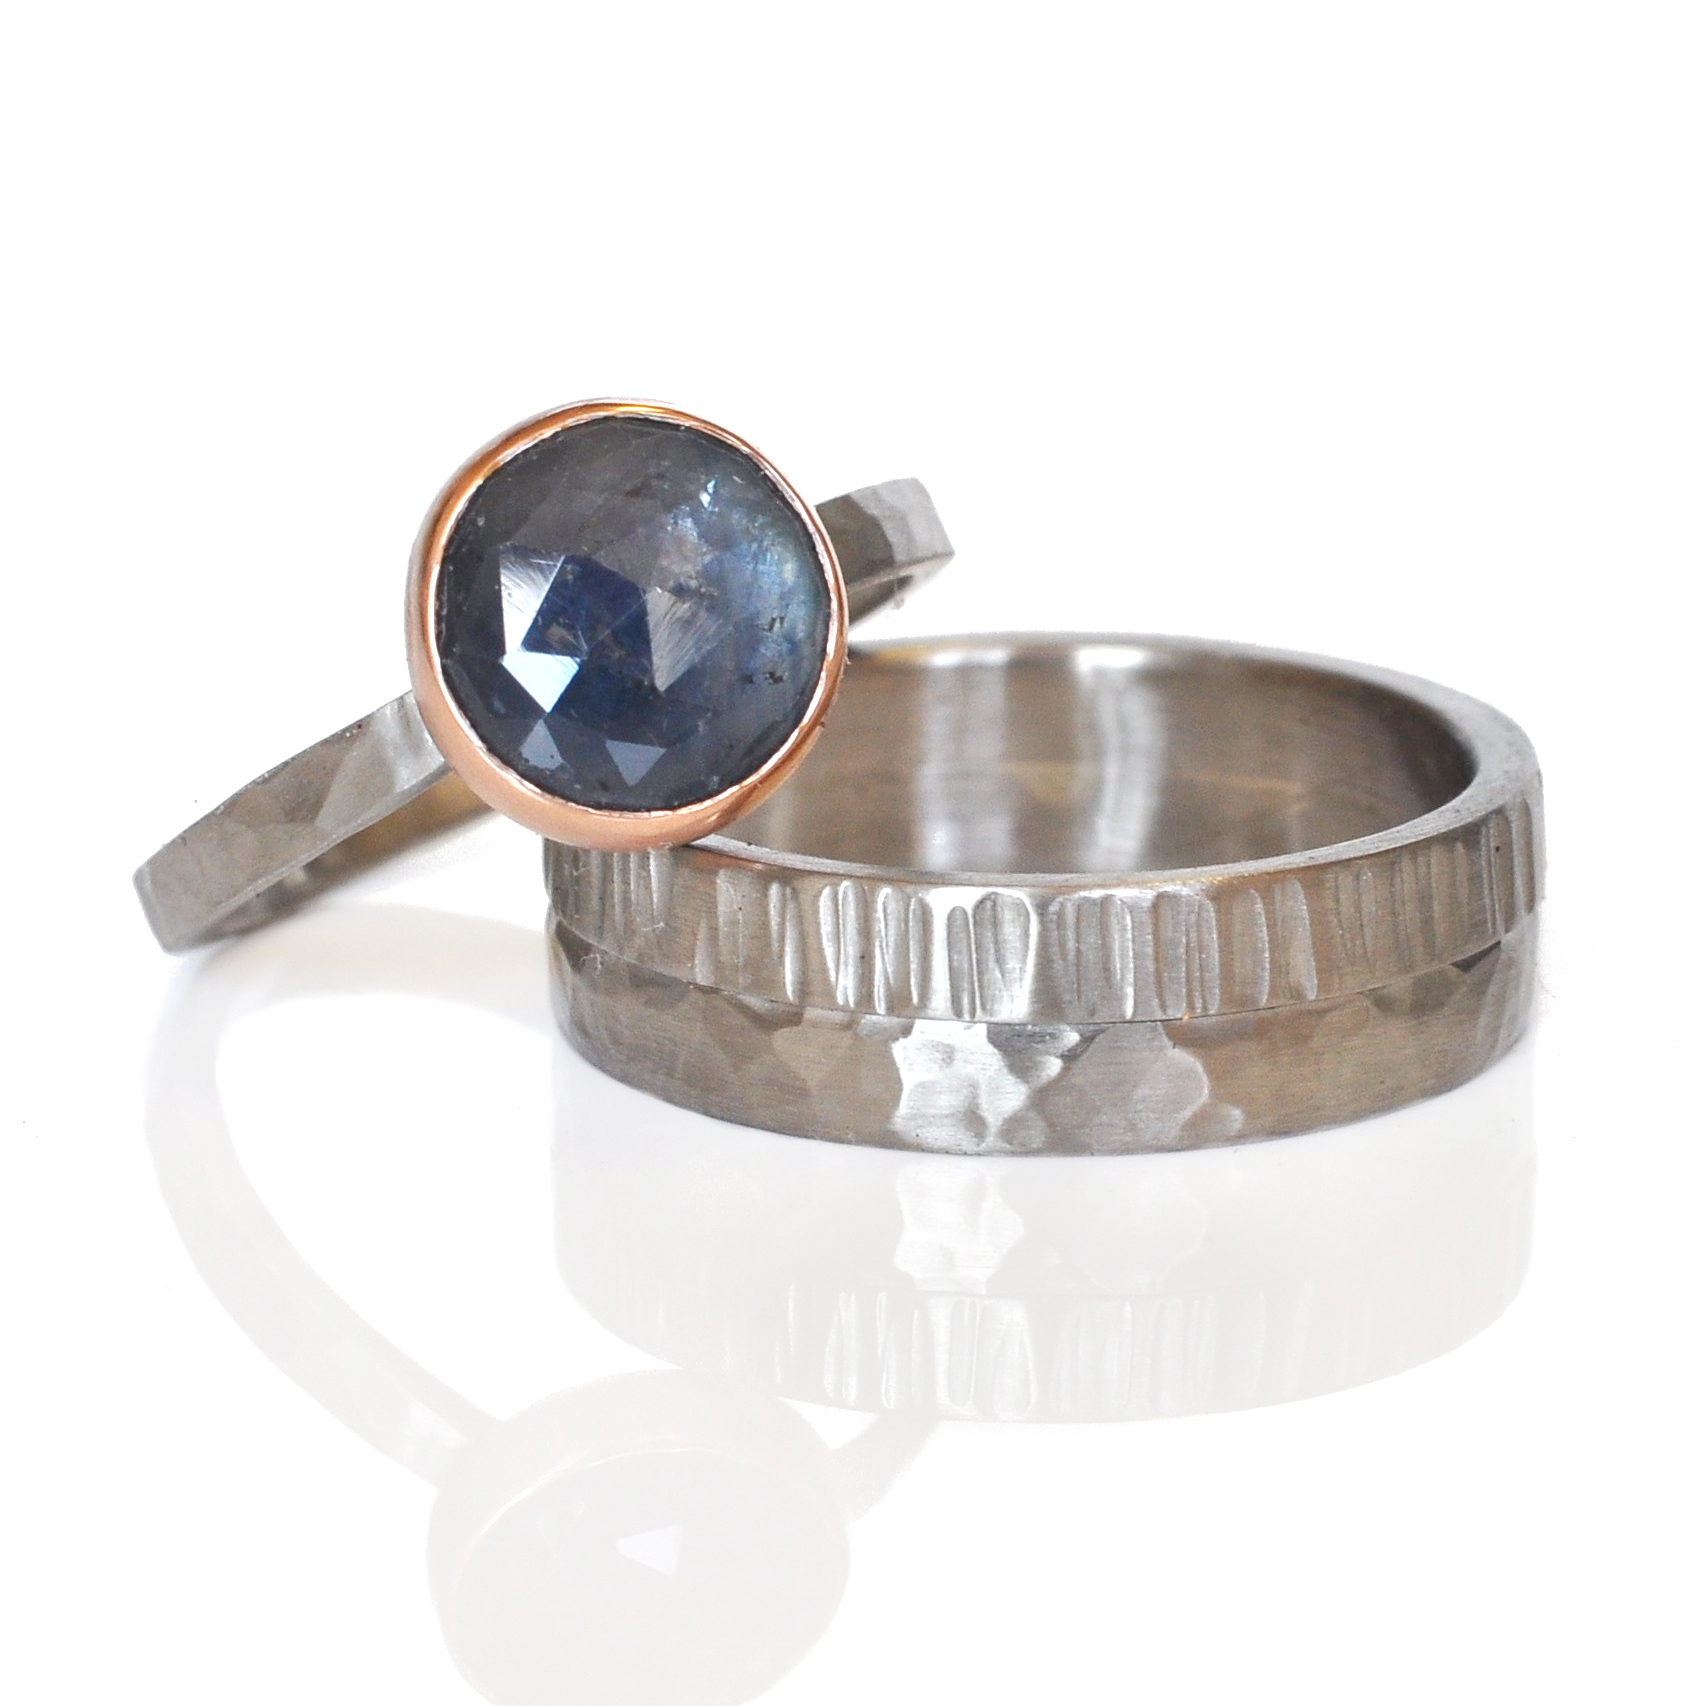 Caitlin picked out one of my favorite rose cut sapphire rings.  The depths of blue in this stone is quite incredible, like gazing into a lake.  Rose cut blue sapphire set in 14k red gold on a hammered palladium band.  Ryan choose a fun mix of textures for his palladium wedding band.